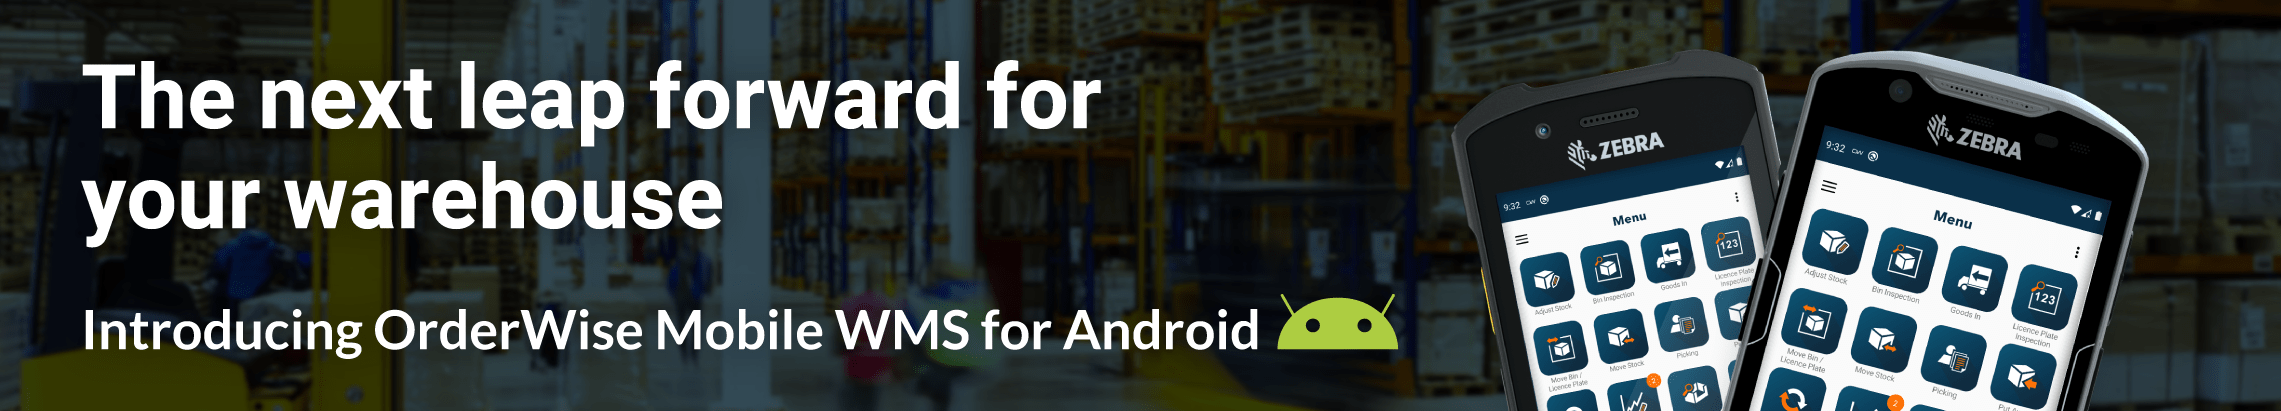 Android HHT | Orderwise